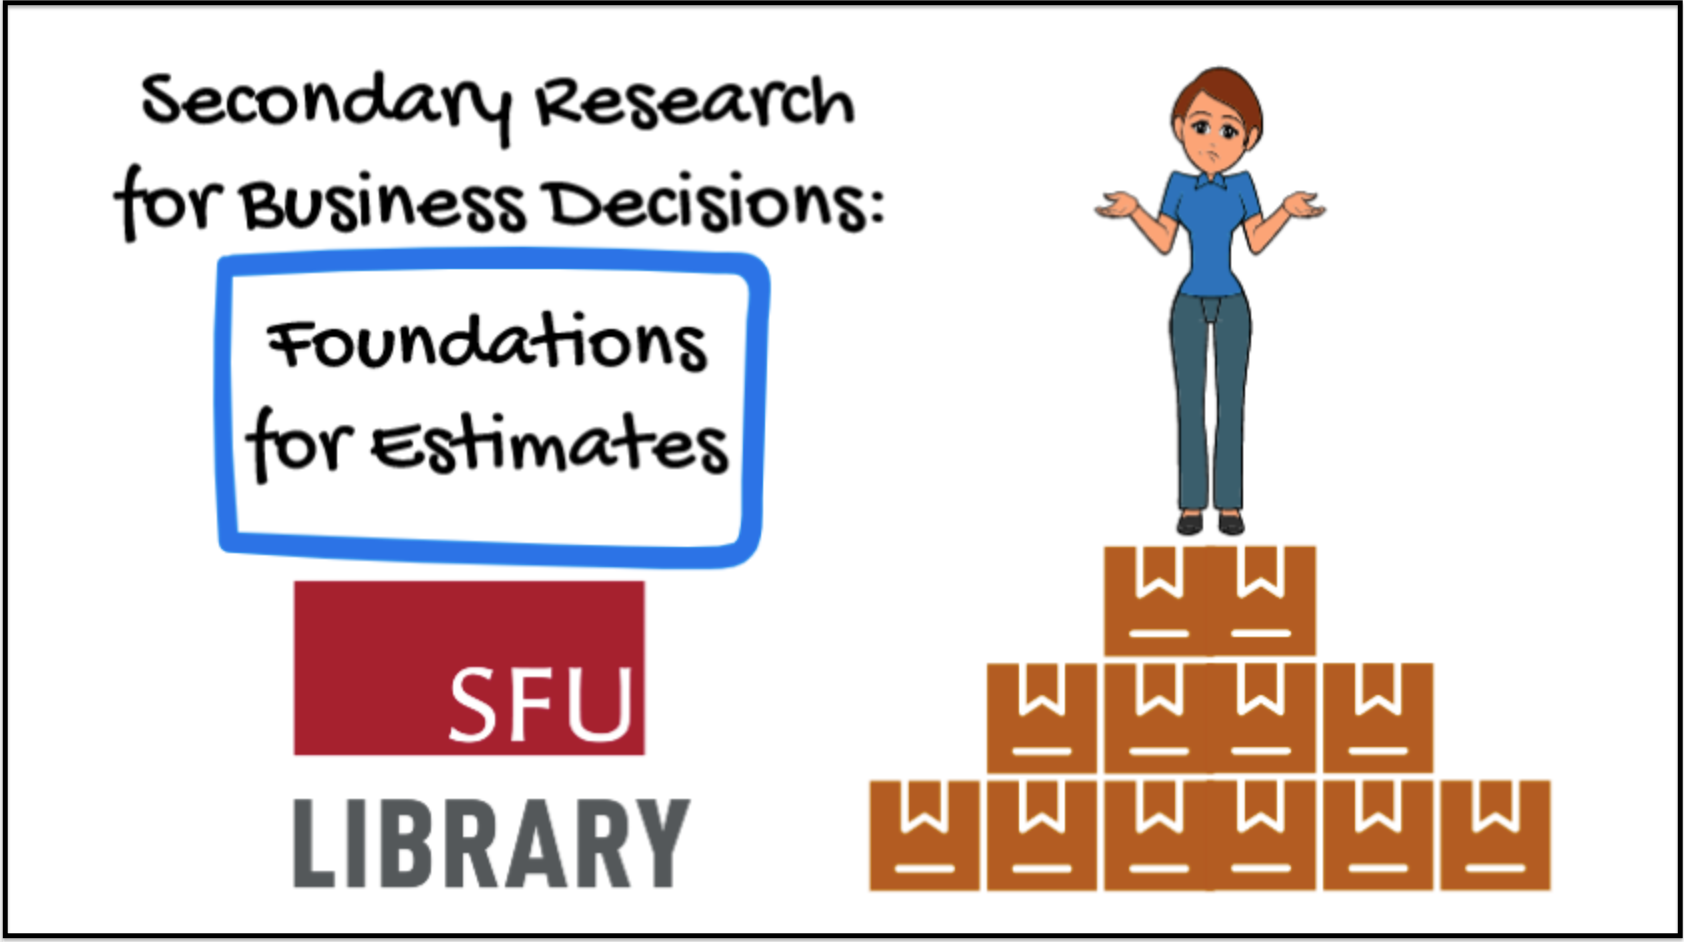 Cover image from video: Secondary Research for Business Decisions: Foundations for Estimates